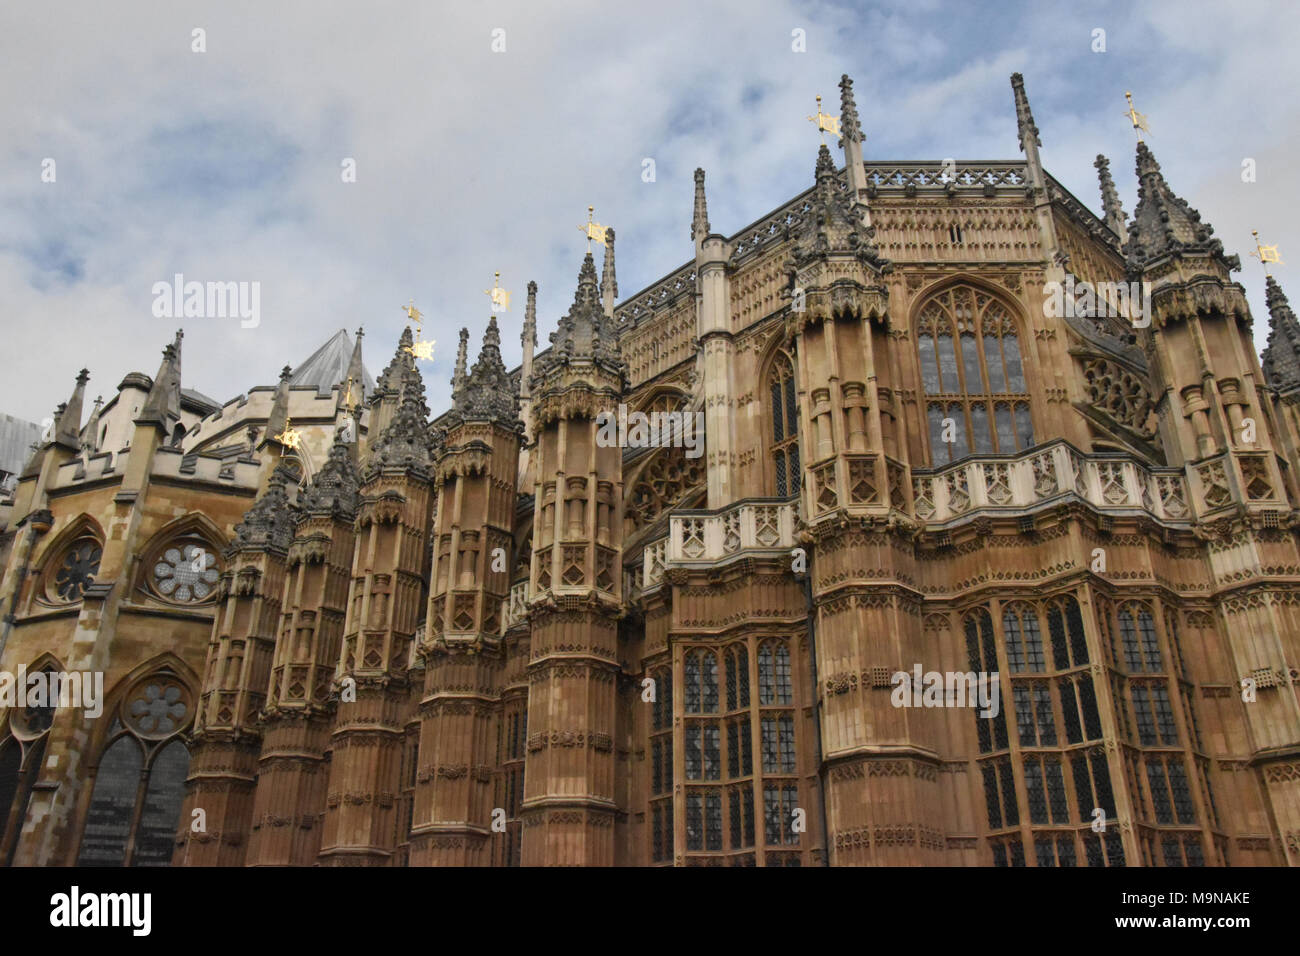 Henry VII Lady Chapel Exterior. This Chapel is at the far eastern end of Westminster Abbey and was paid for by the will of Henry VII. It was construct - Stock Image